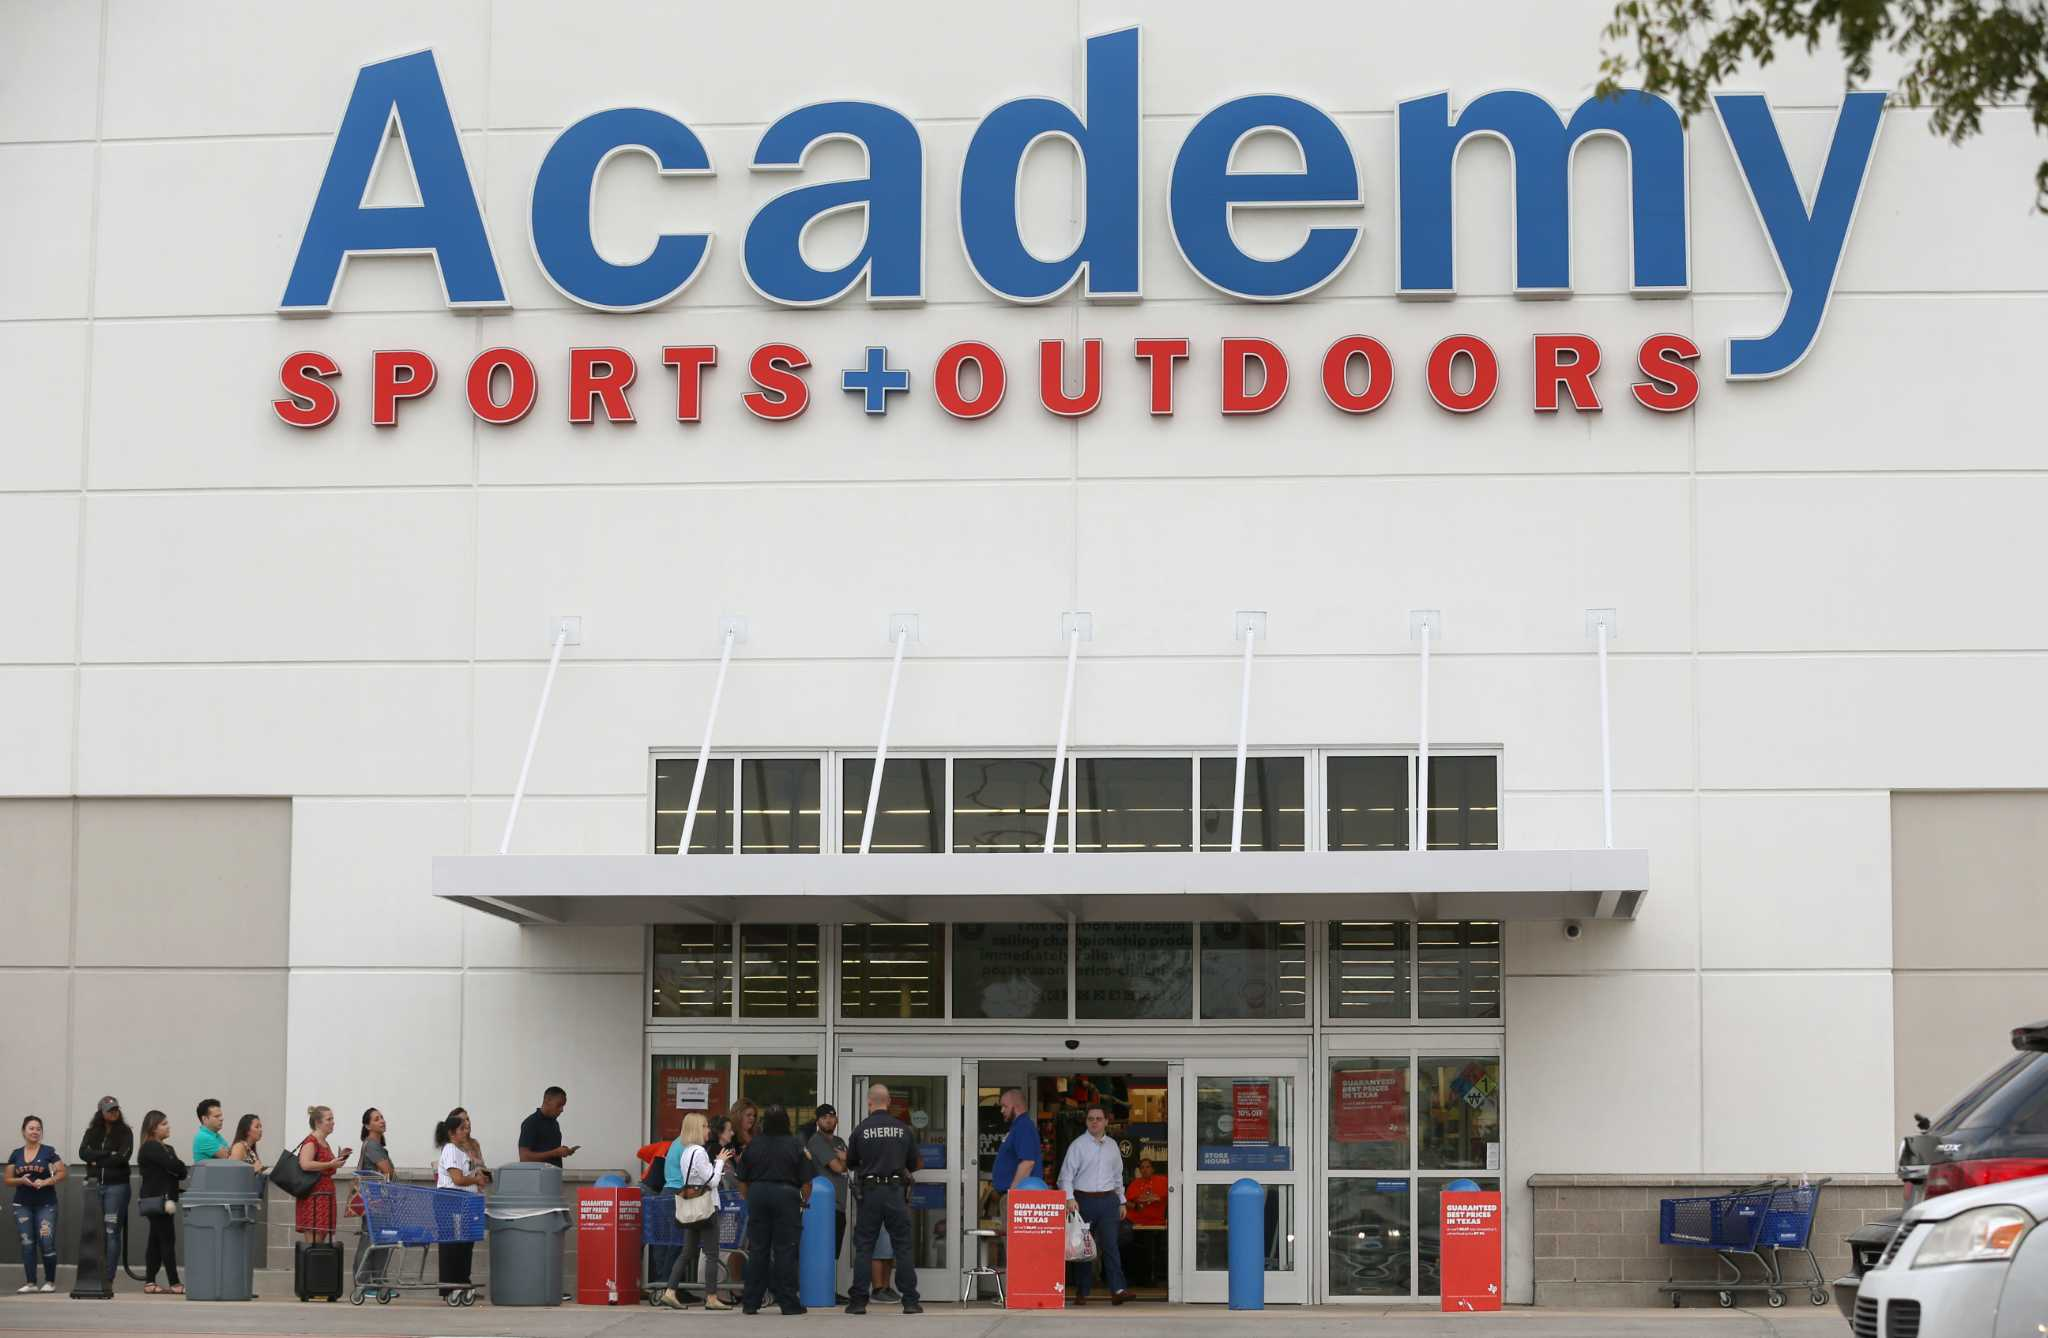 Academy Sports & Outdoors to lay off 57 drivers - SFChronicle com